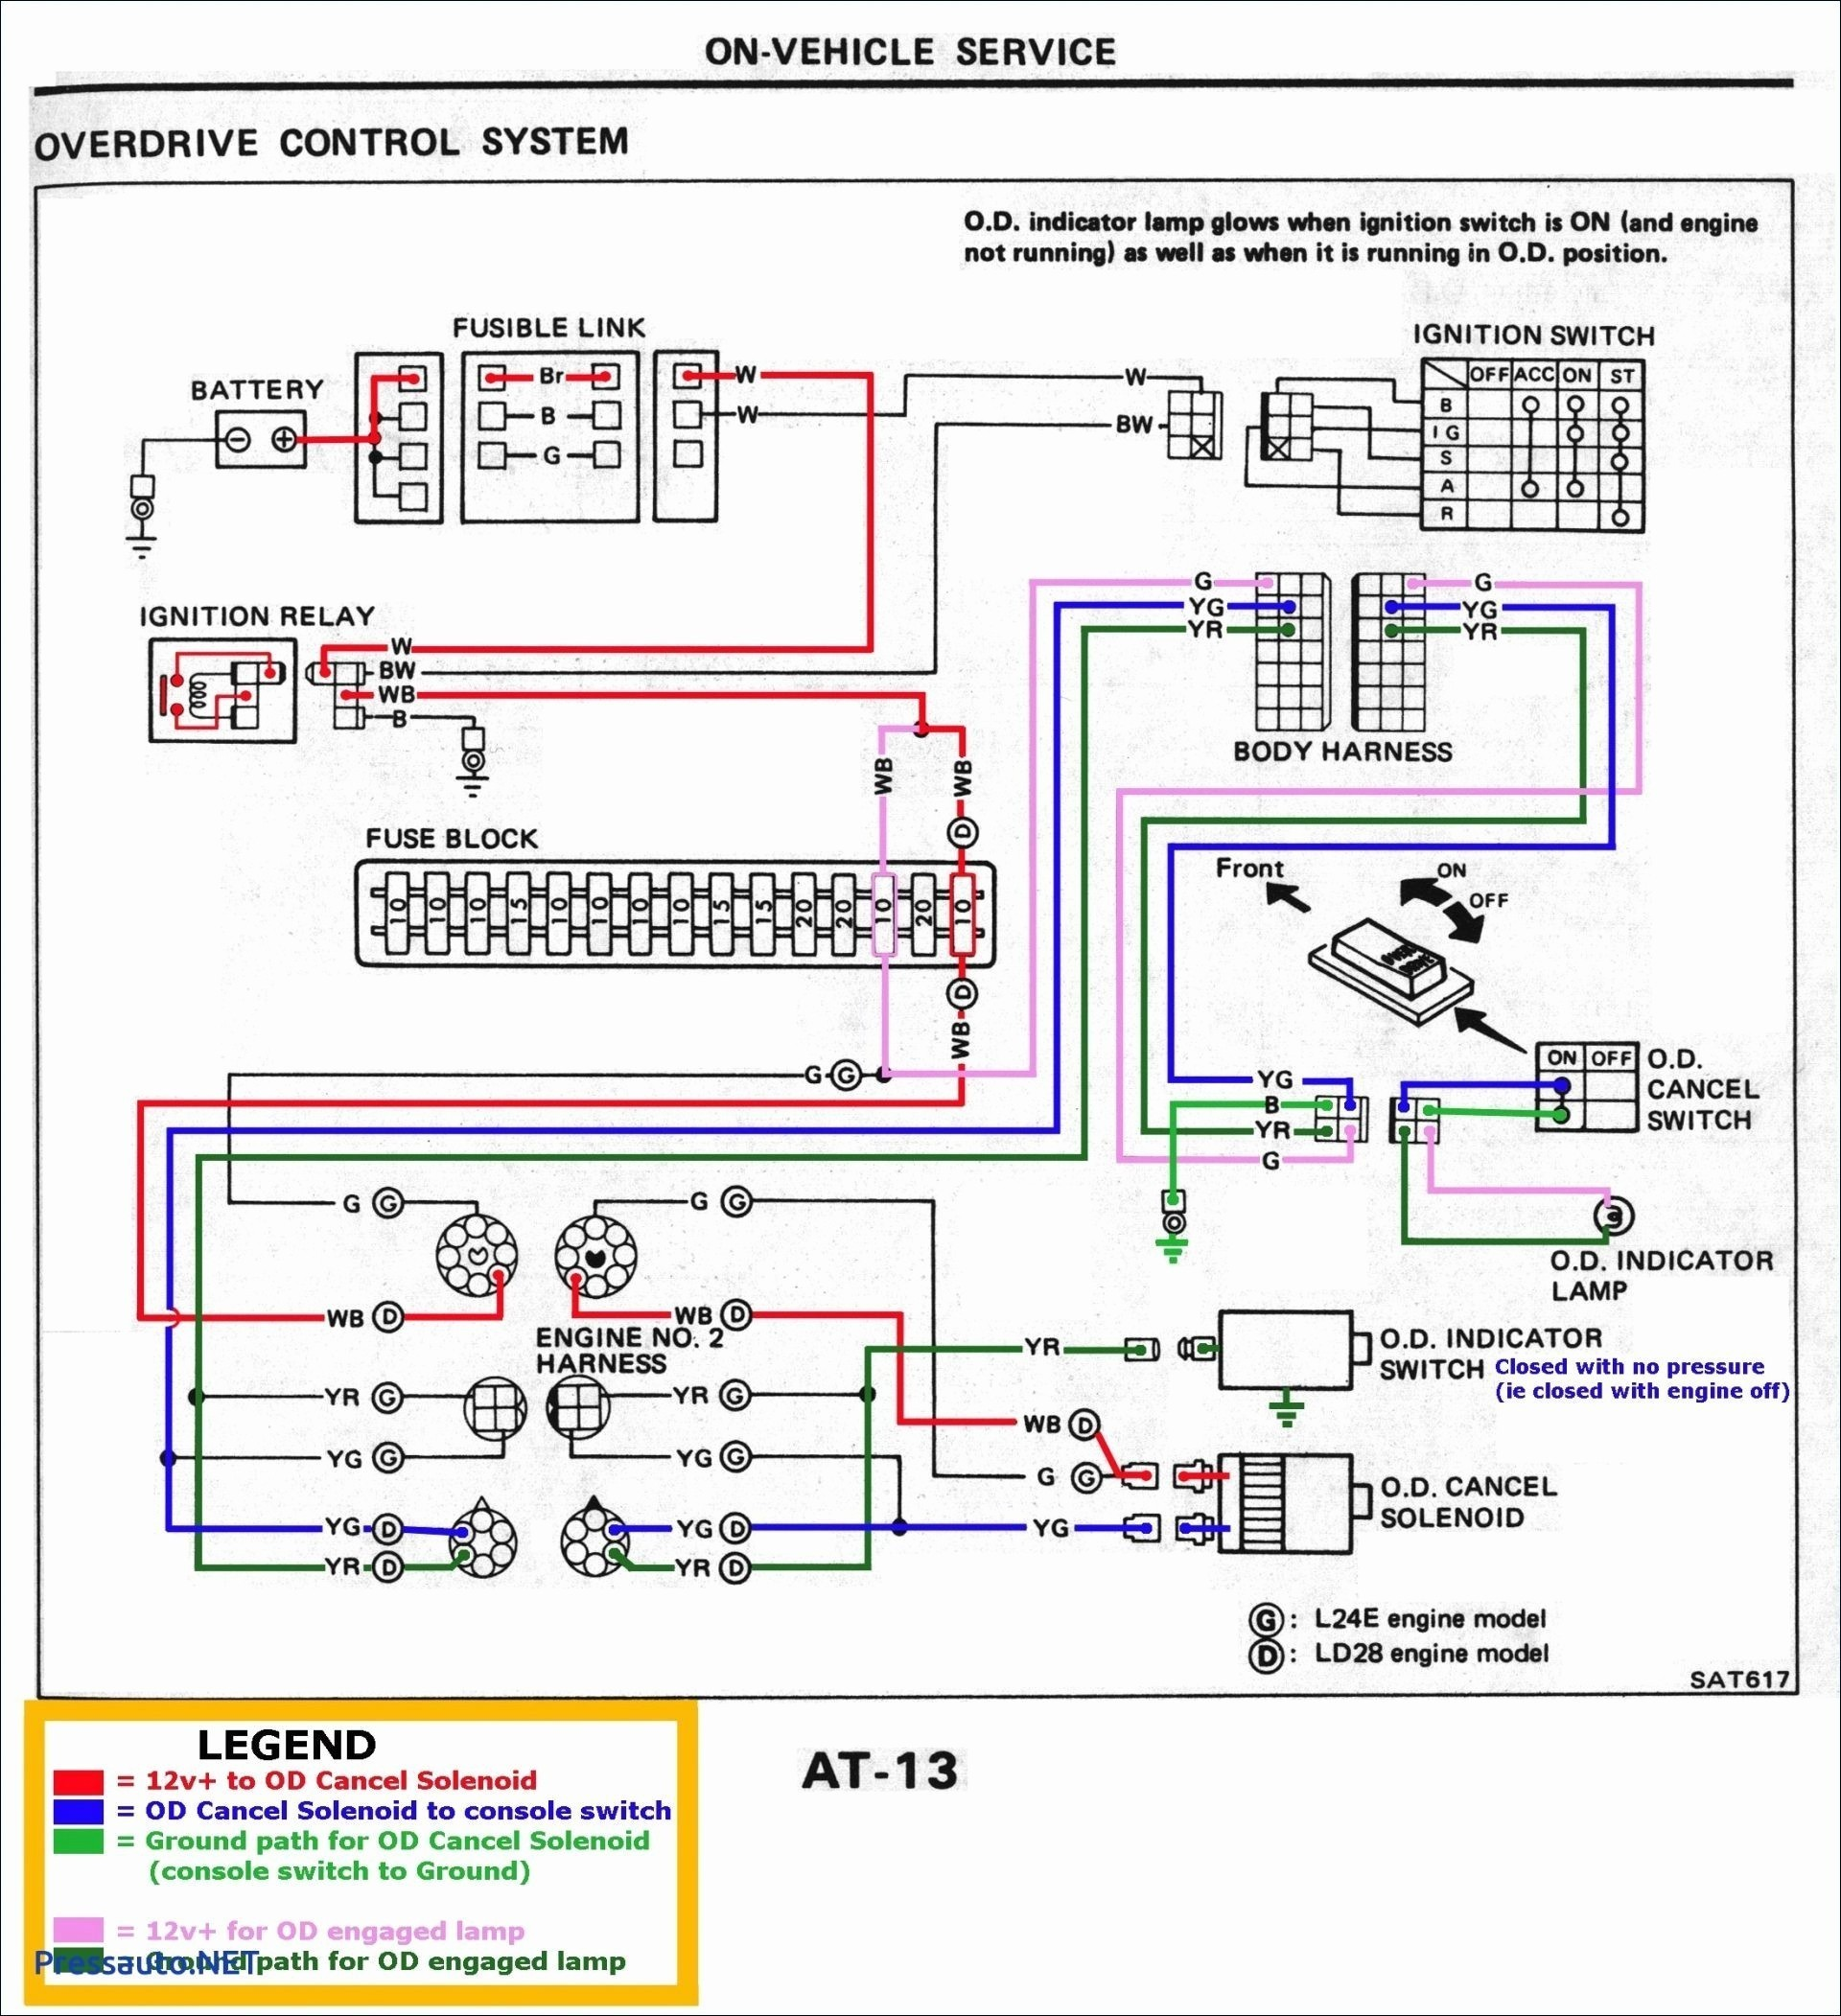 Rotary Motor Diagram Wiring Diagram for Fender 5 Way Switch Valid Rotary Switch Wiring Of Rotary Motor Diagram